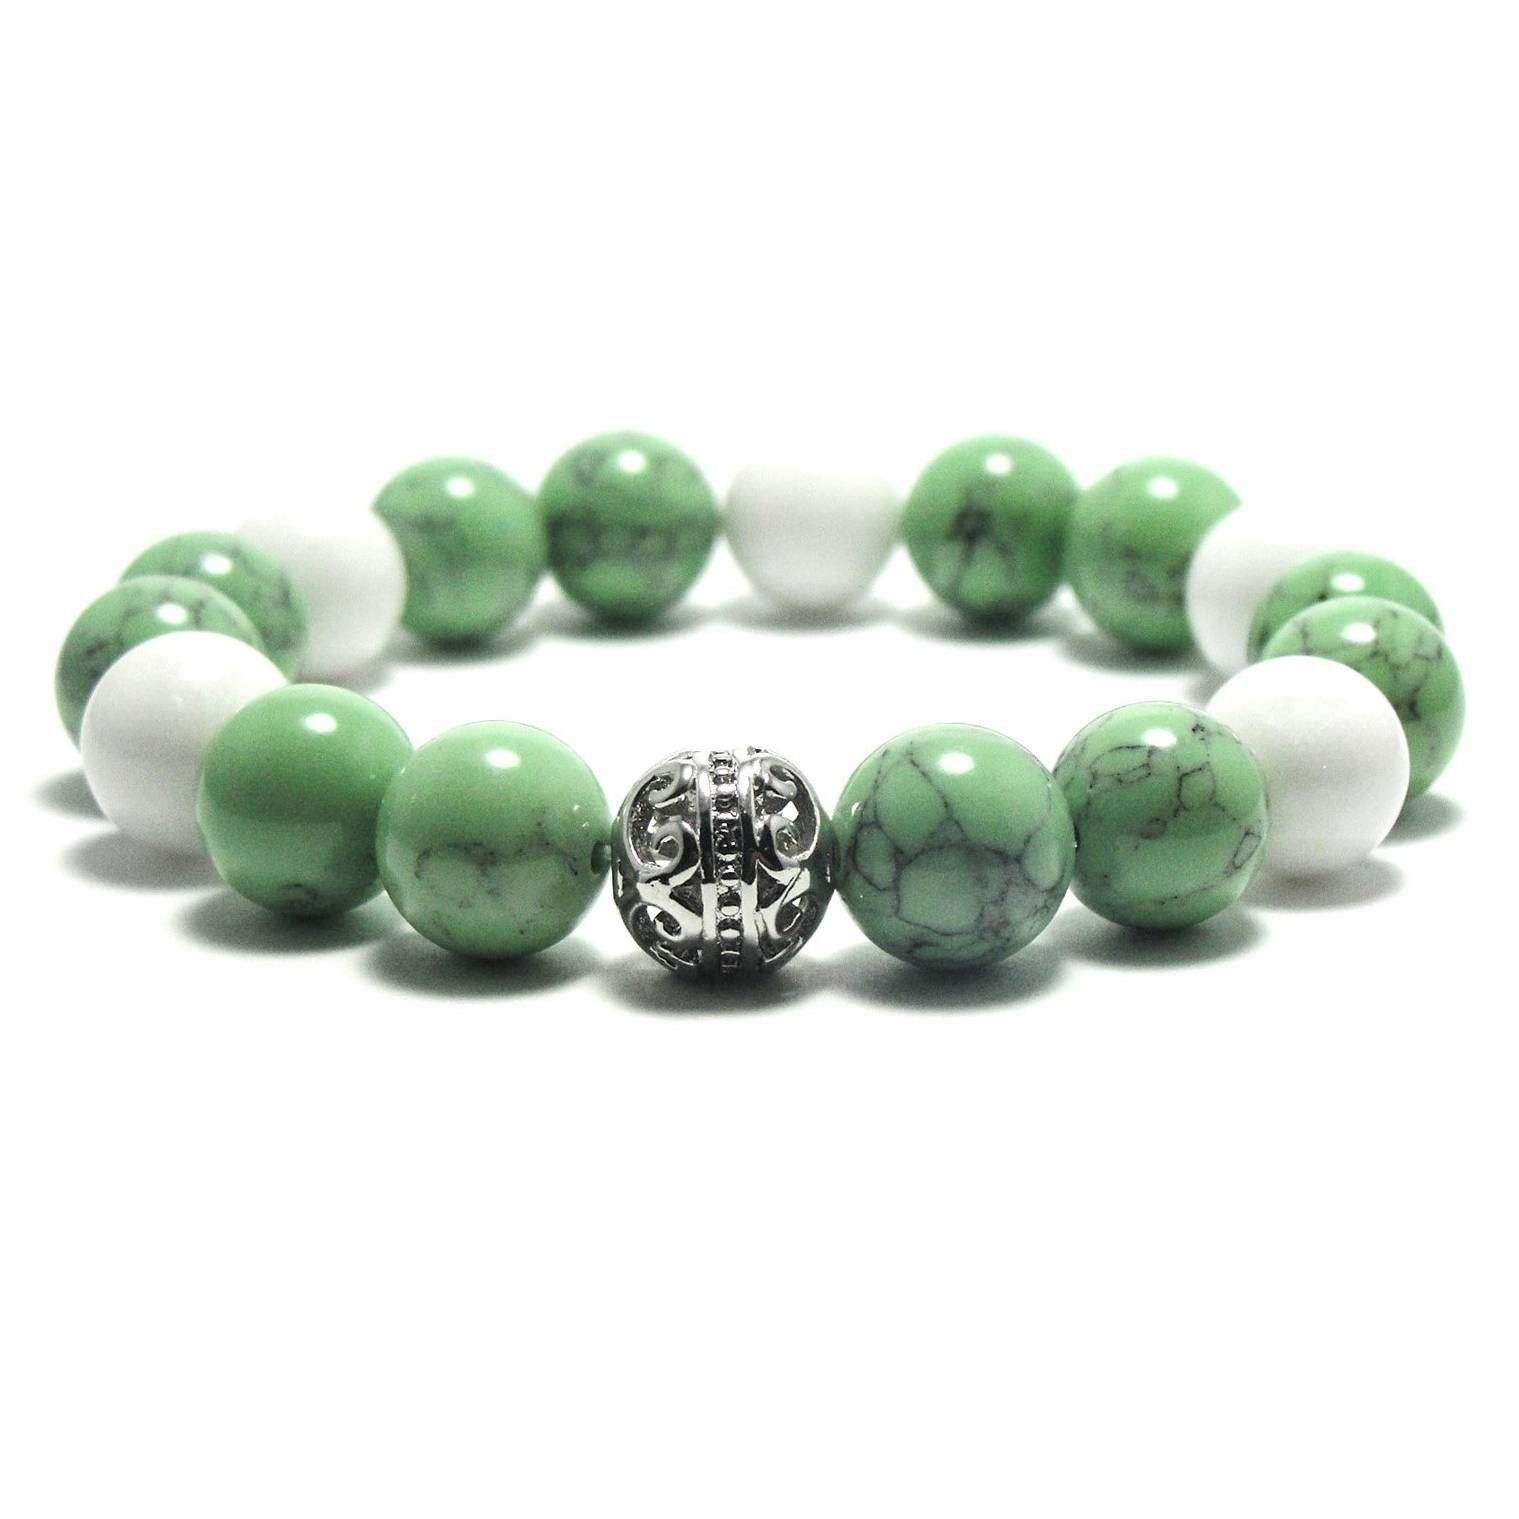 Unique Green and Black Textured Natural beads Stretch Bracelet For Serenity